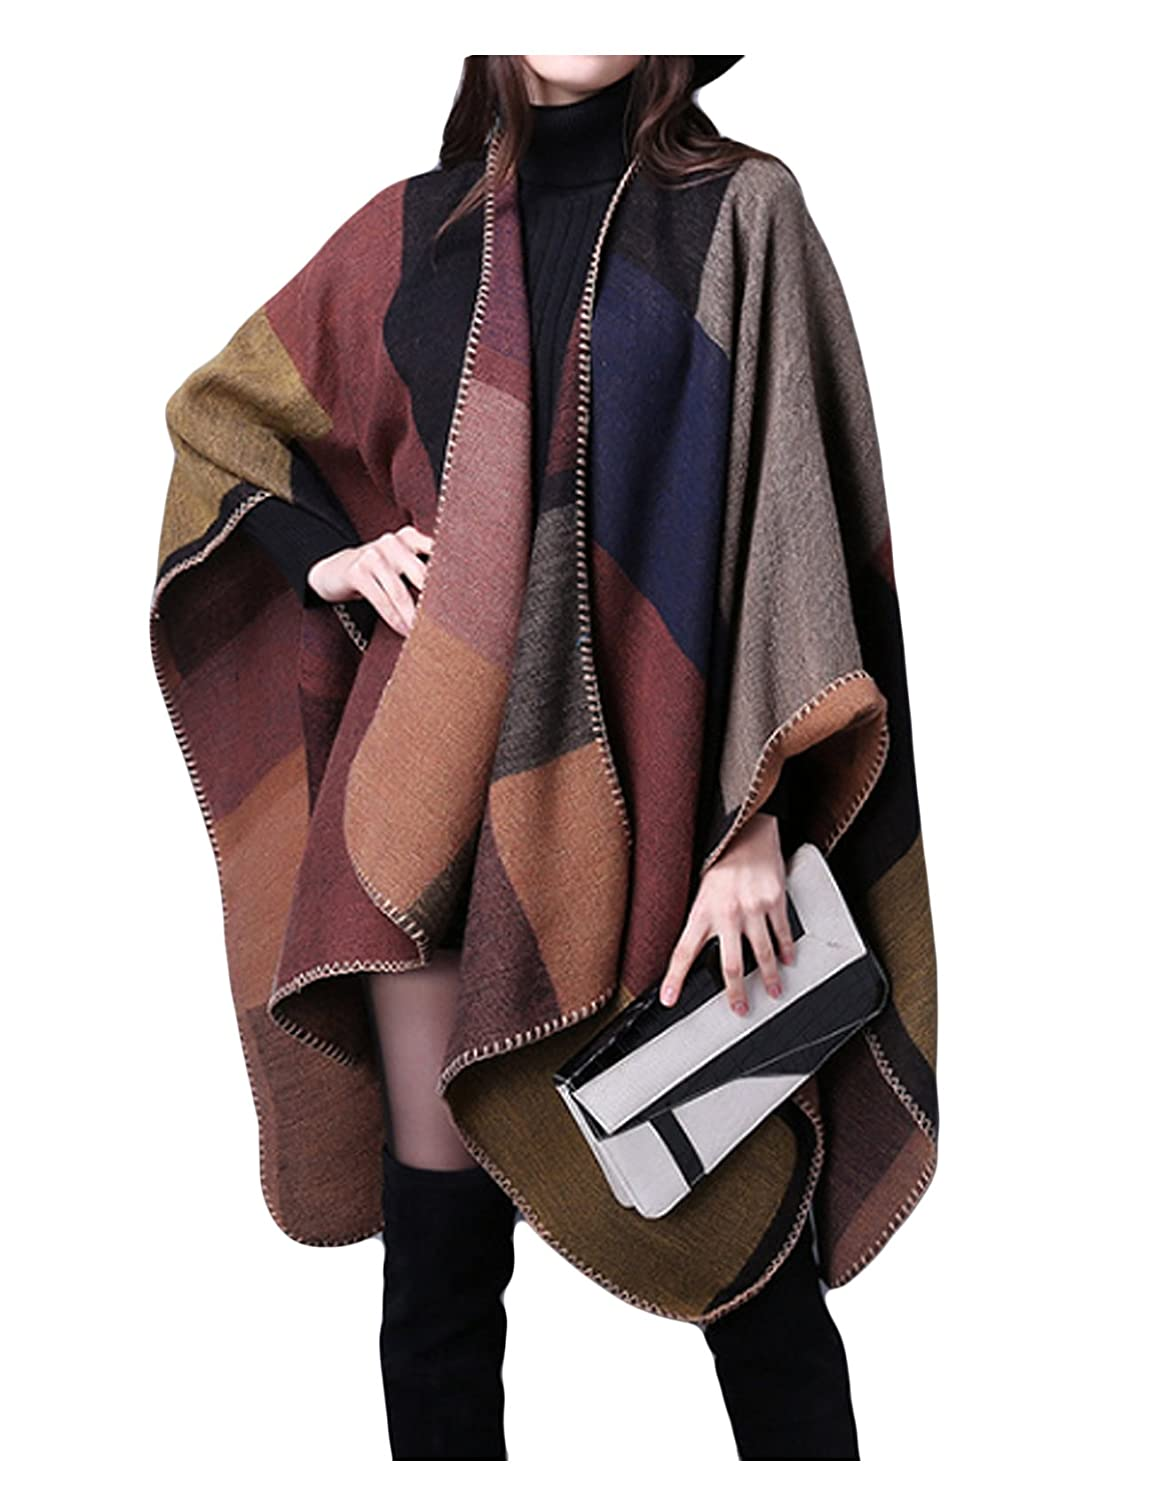 Bestgift Womens Oversized Open Cardigans Blanket Poncho Capes Khaki One Size BSGFWJ0272-3